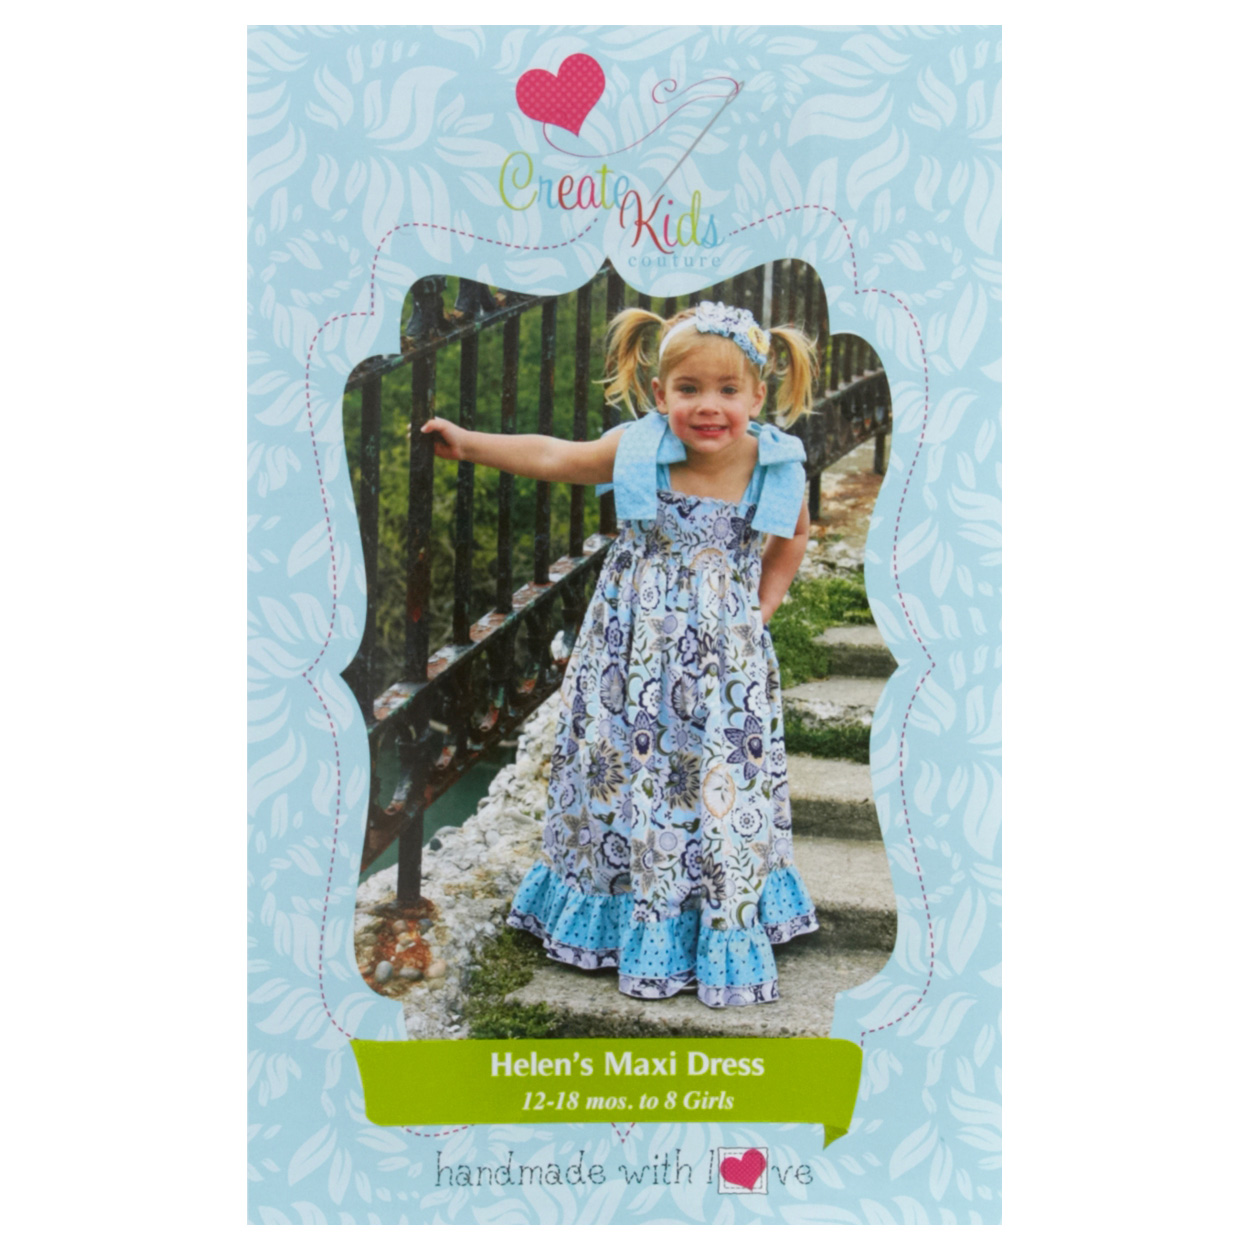 Create Kid's Couture Helen's Maxi Dress Pattern